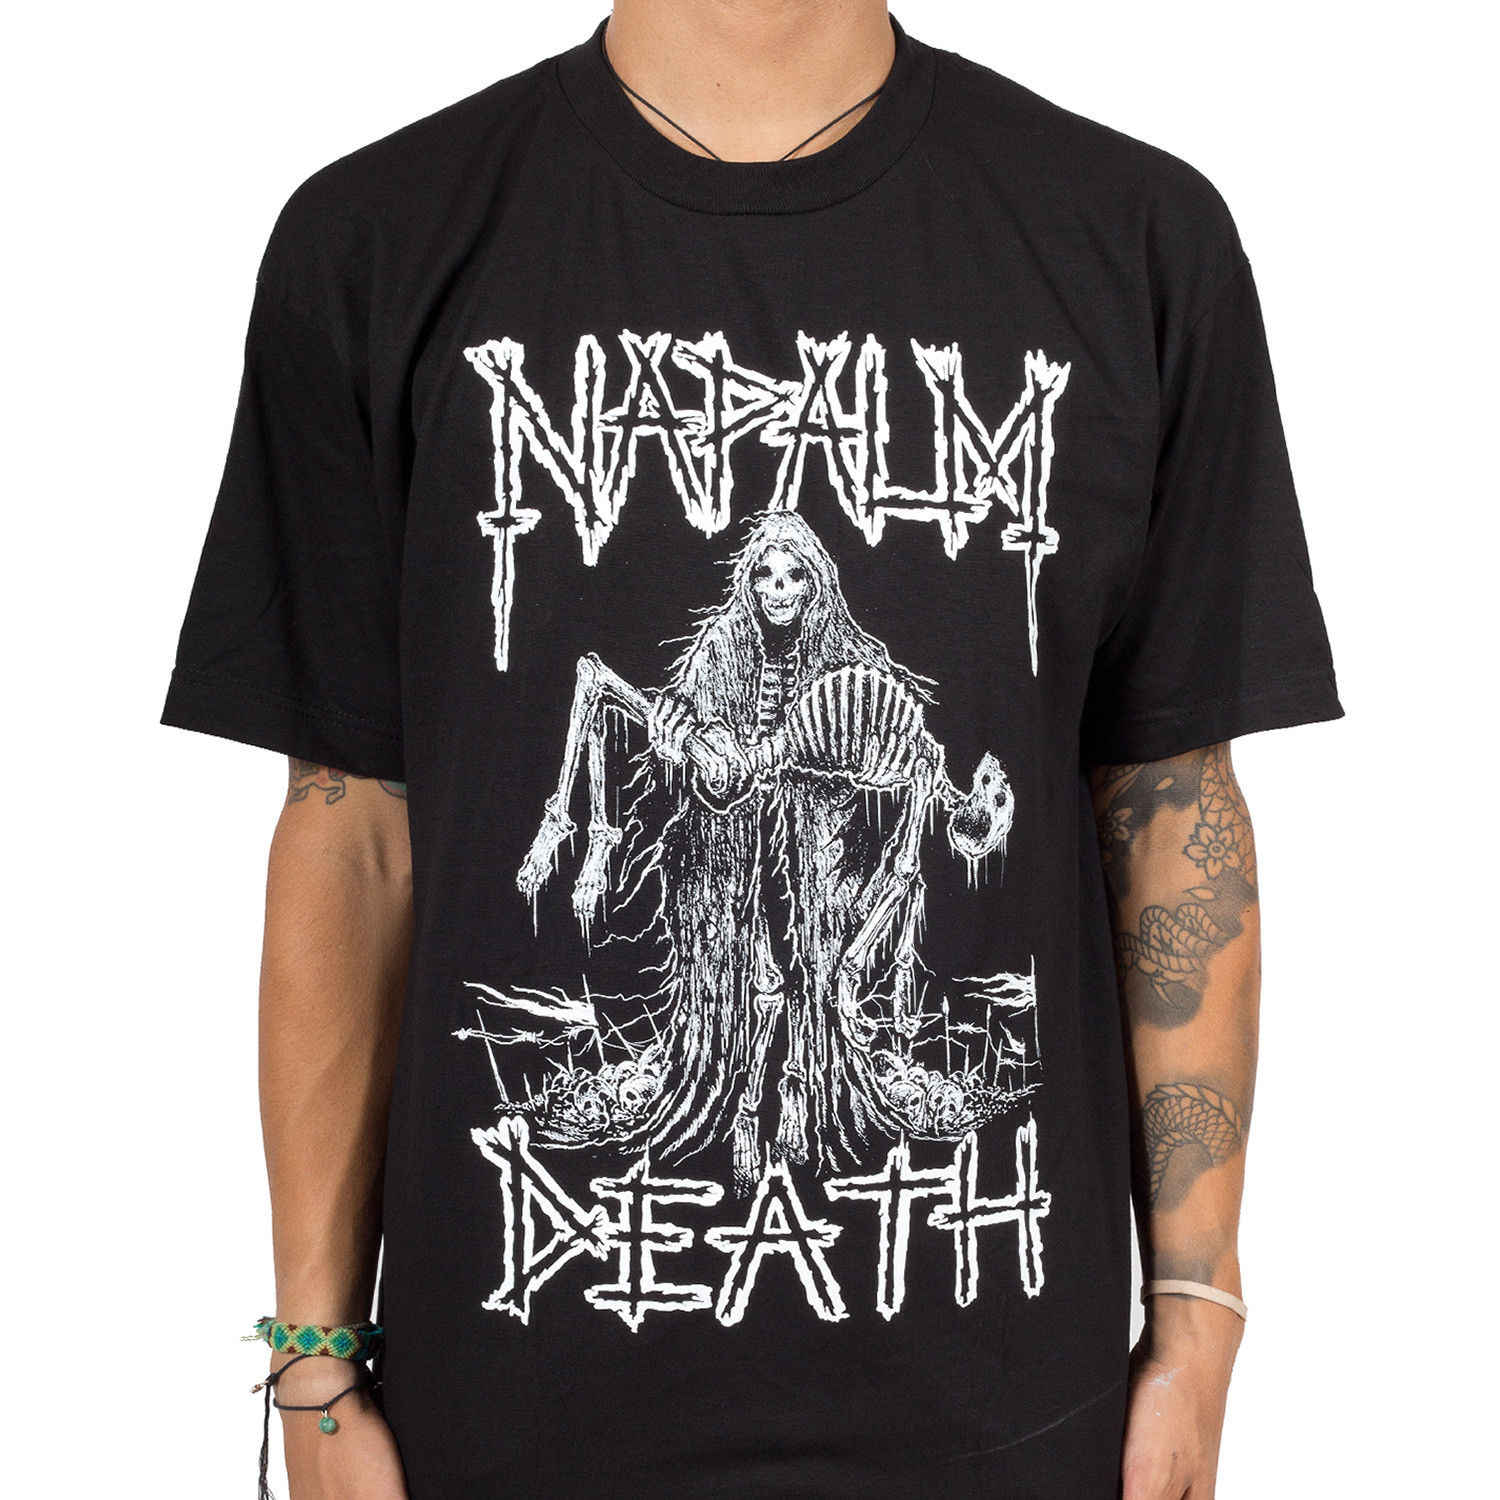 Authentic NAPALM DEATH Band Reaper Skeleton Metal T-Shirt S-3XL NEWLoose Black Men T shirts Homme Tees